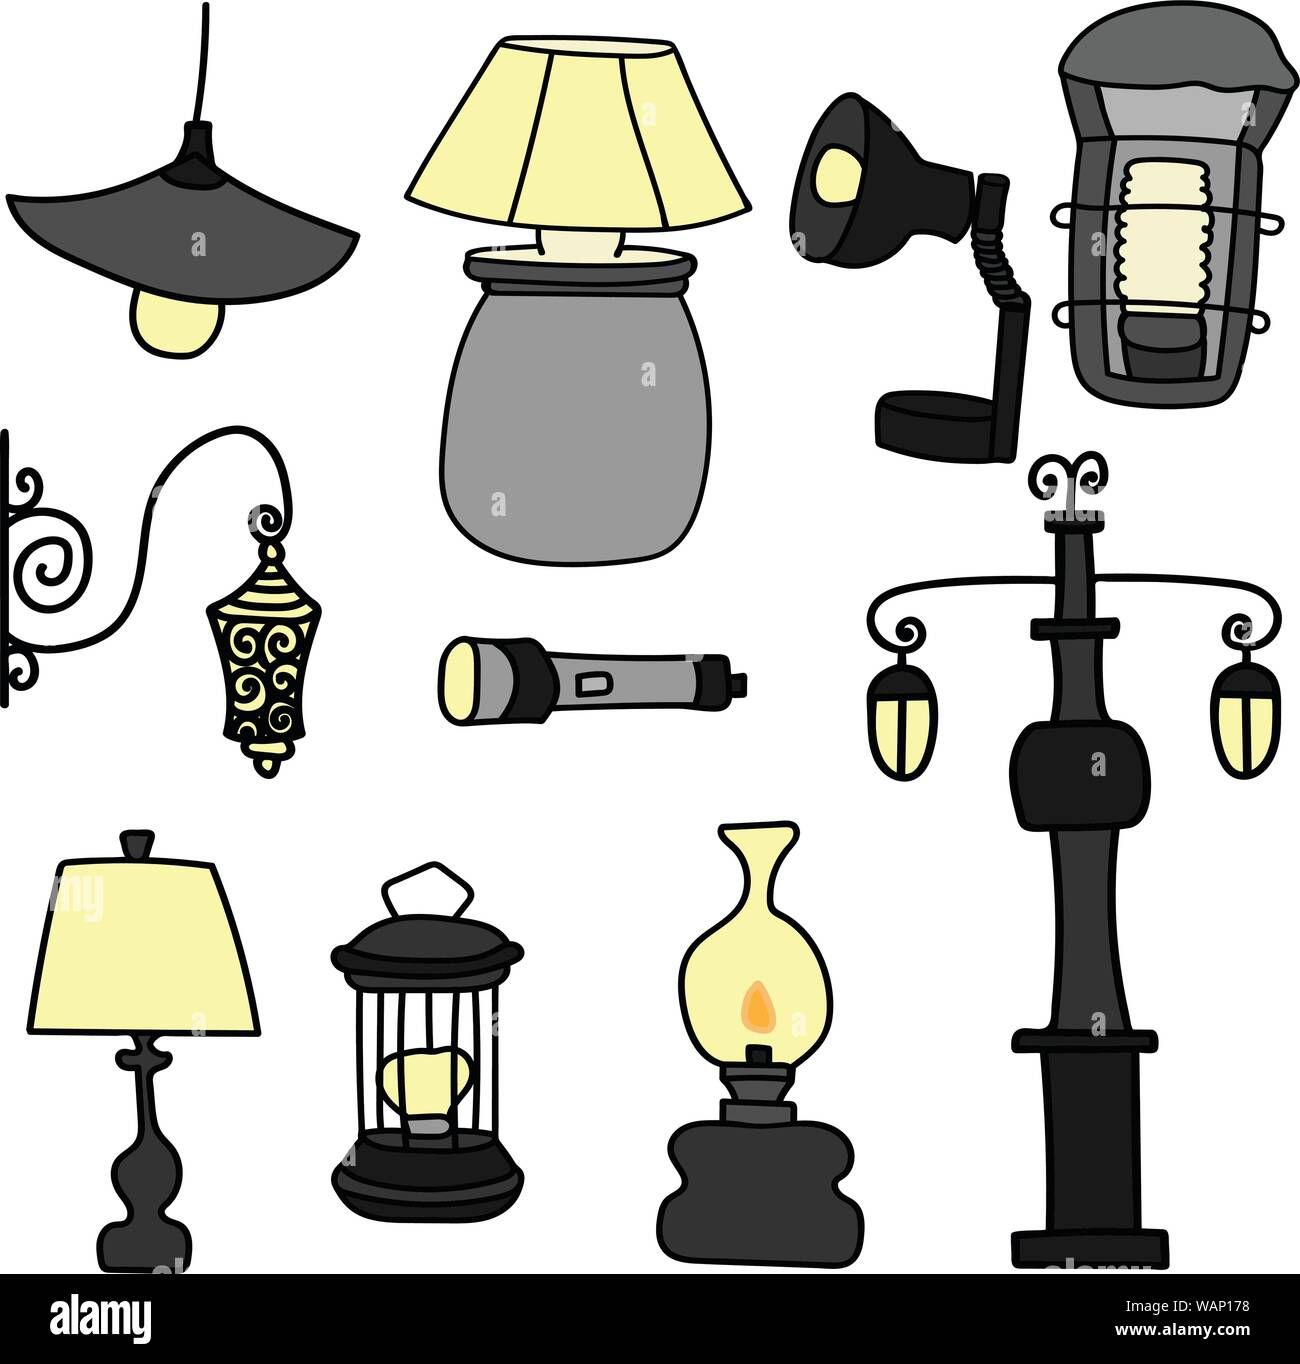 Set of hand-drawn vector lamps, street light, old lamp. Isolated. Stock Vector